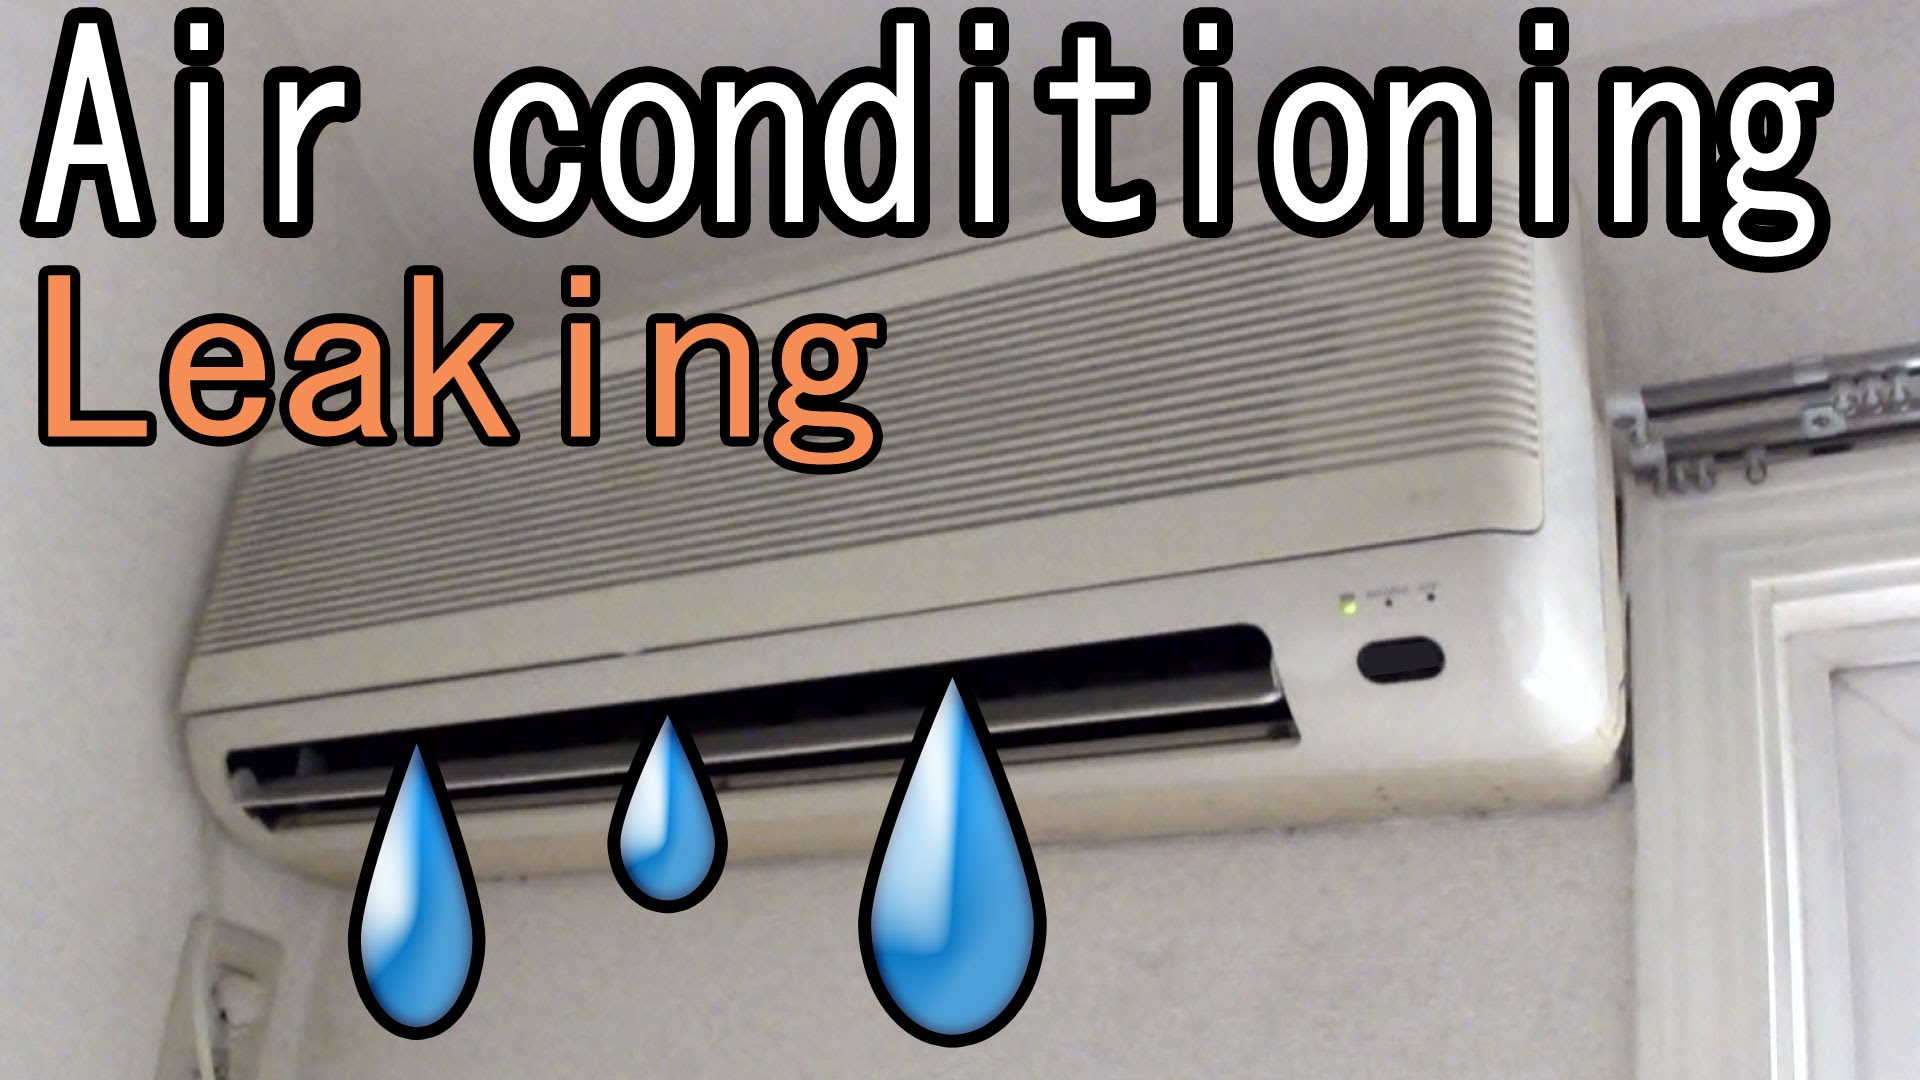 Home Air Conditioning Leaking Water